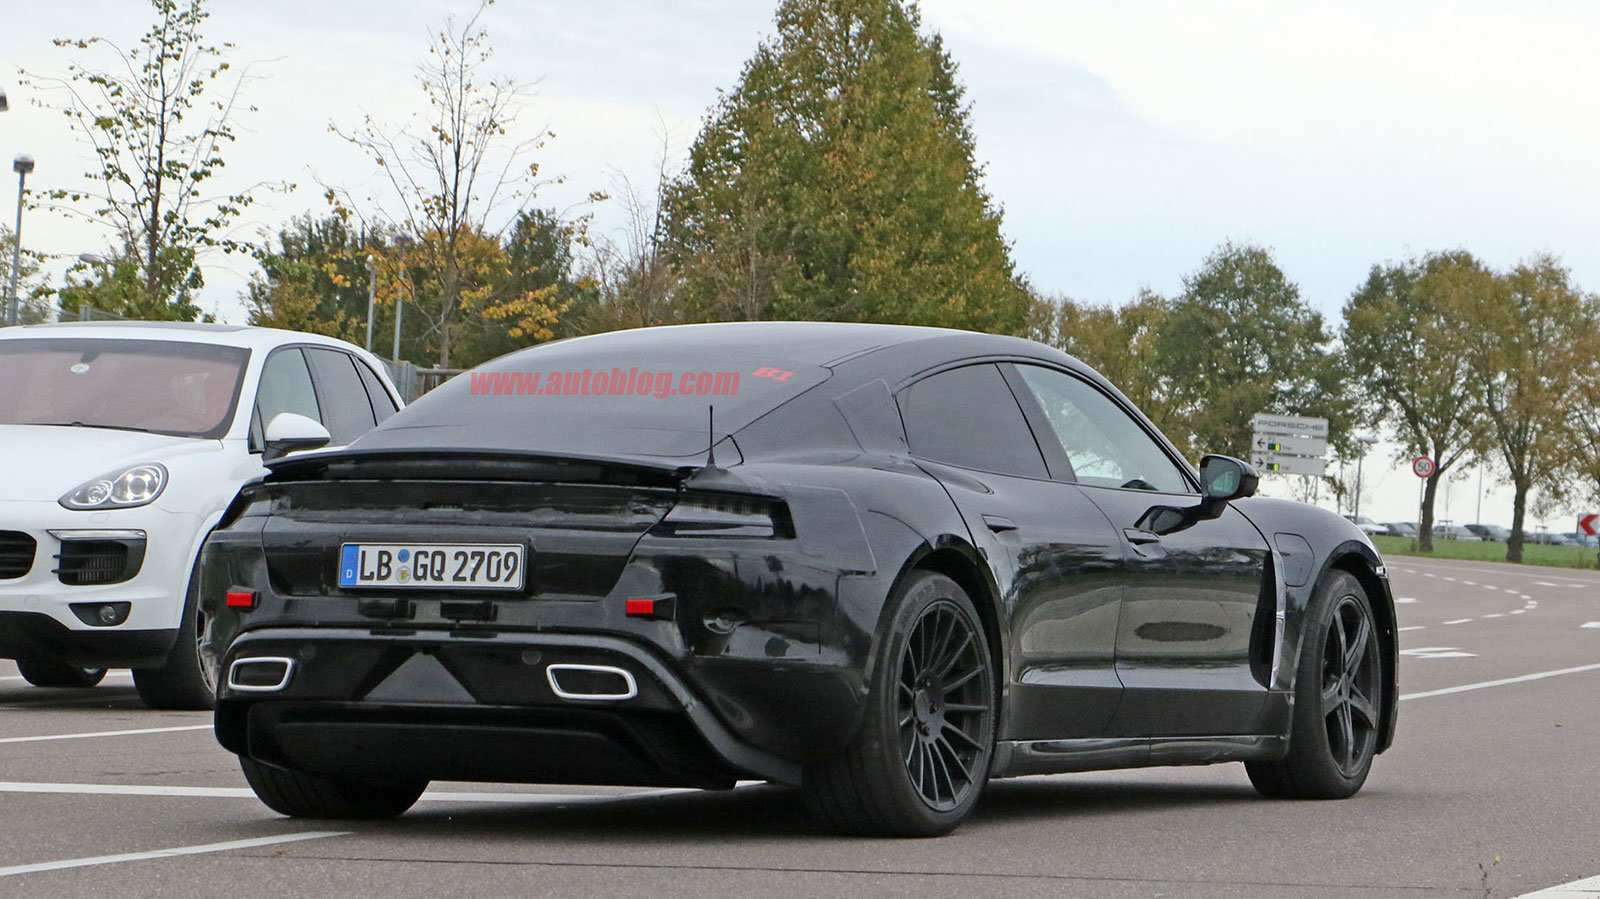 61 A 2020 Porsche Mission E Electric Sedan Spied Testing Alongside Teslas Overview